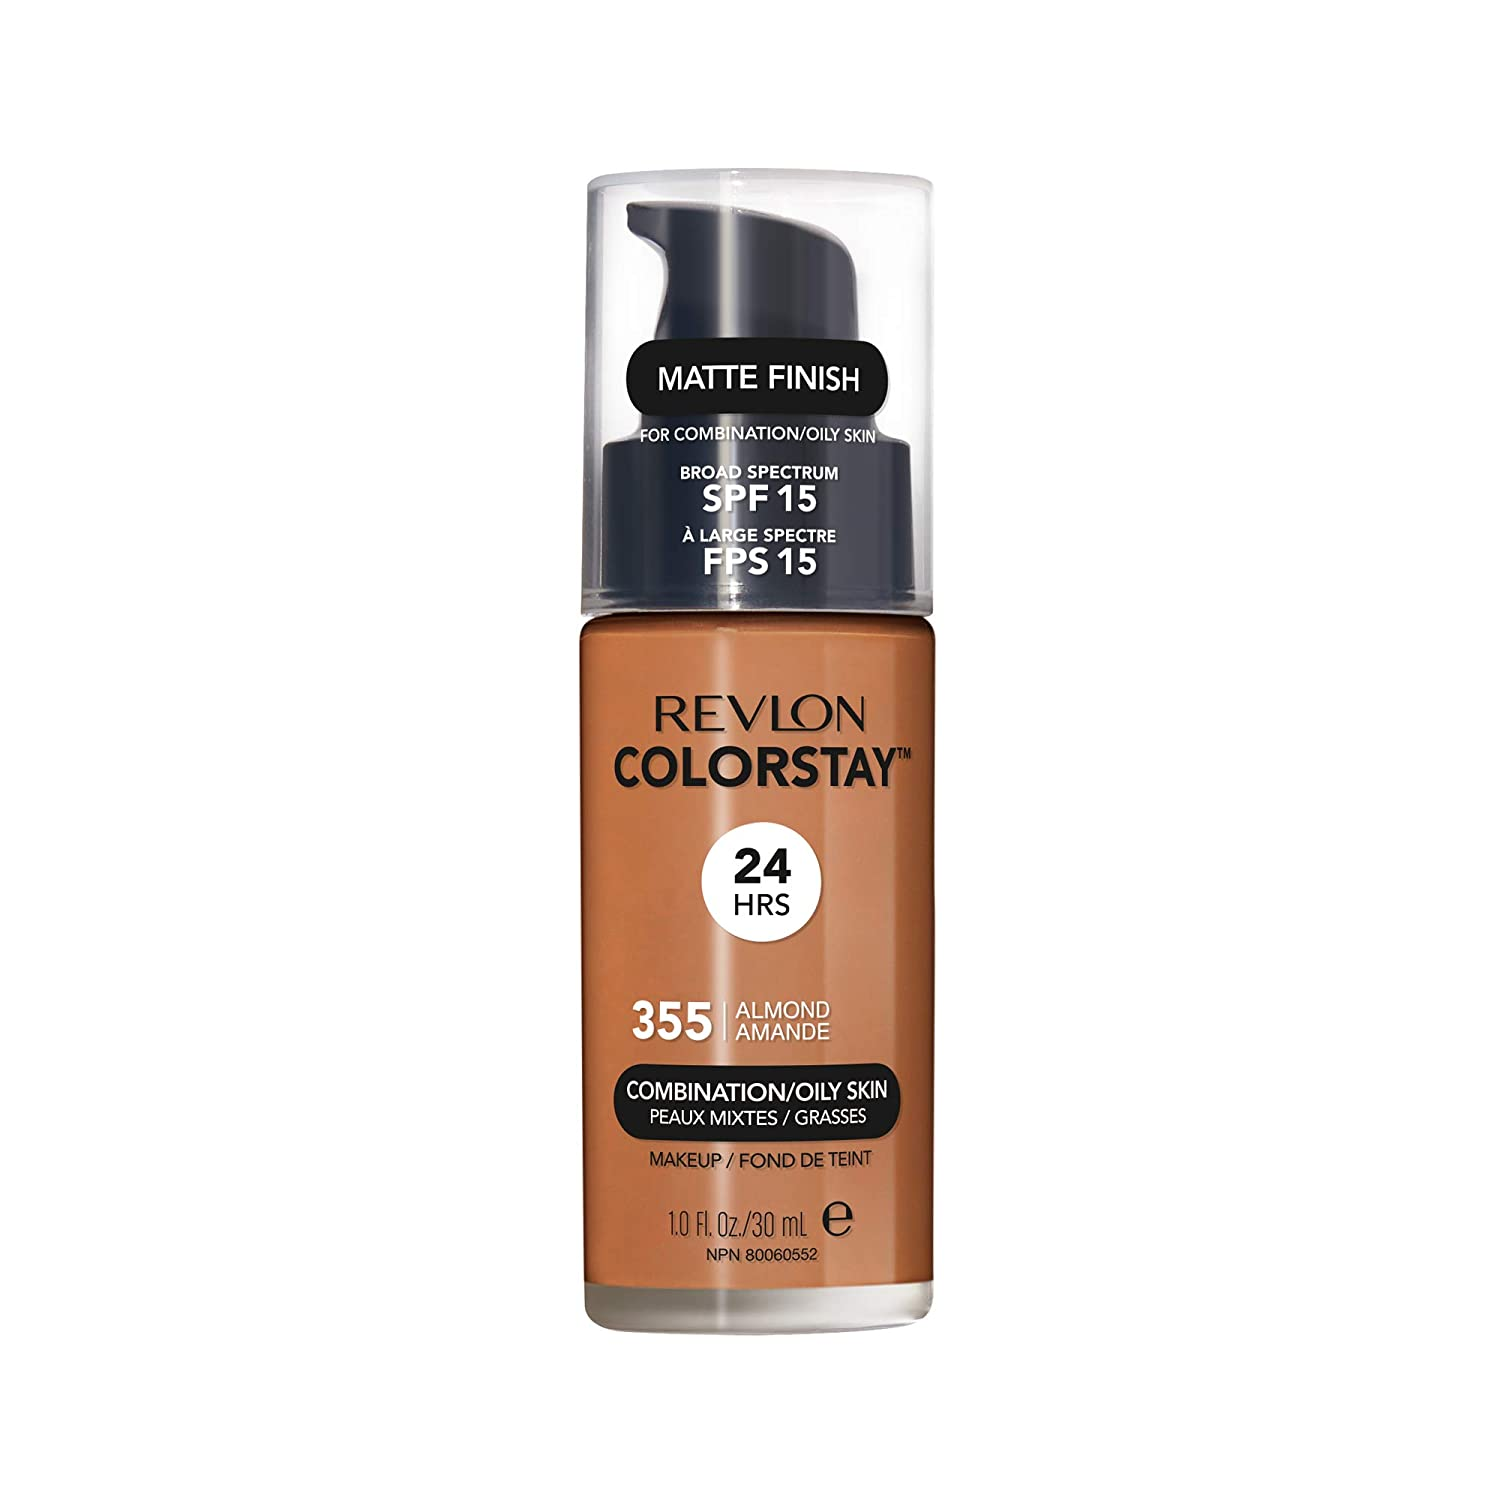 Revlon ColorStay Makeup for Combination/Oily Skin SPF 15, Longwear Liquid Foundation, with Medium-Full Coverage, Matte Finish, Oil Free, 355 Almond, 1.0 oz